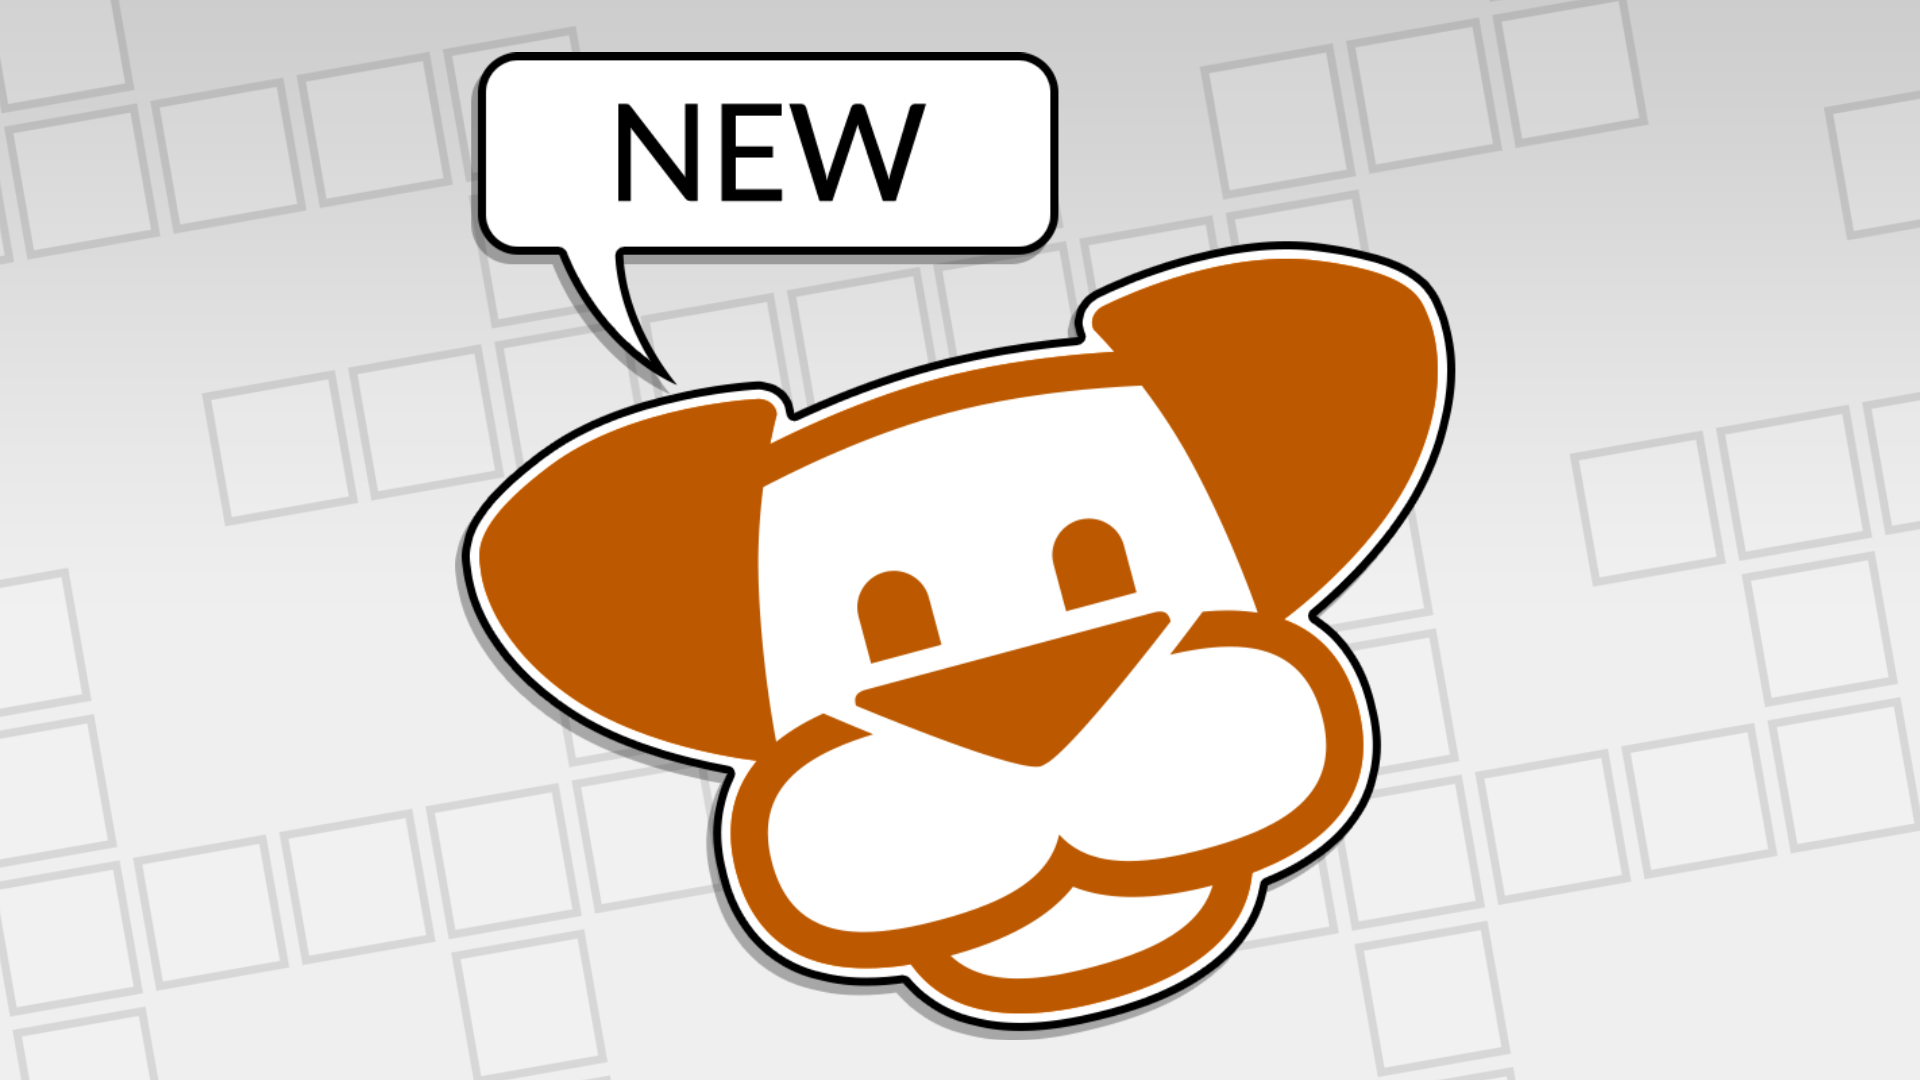 Icon for New-fangled